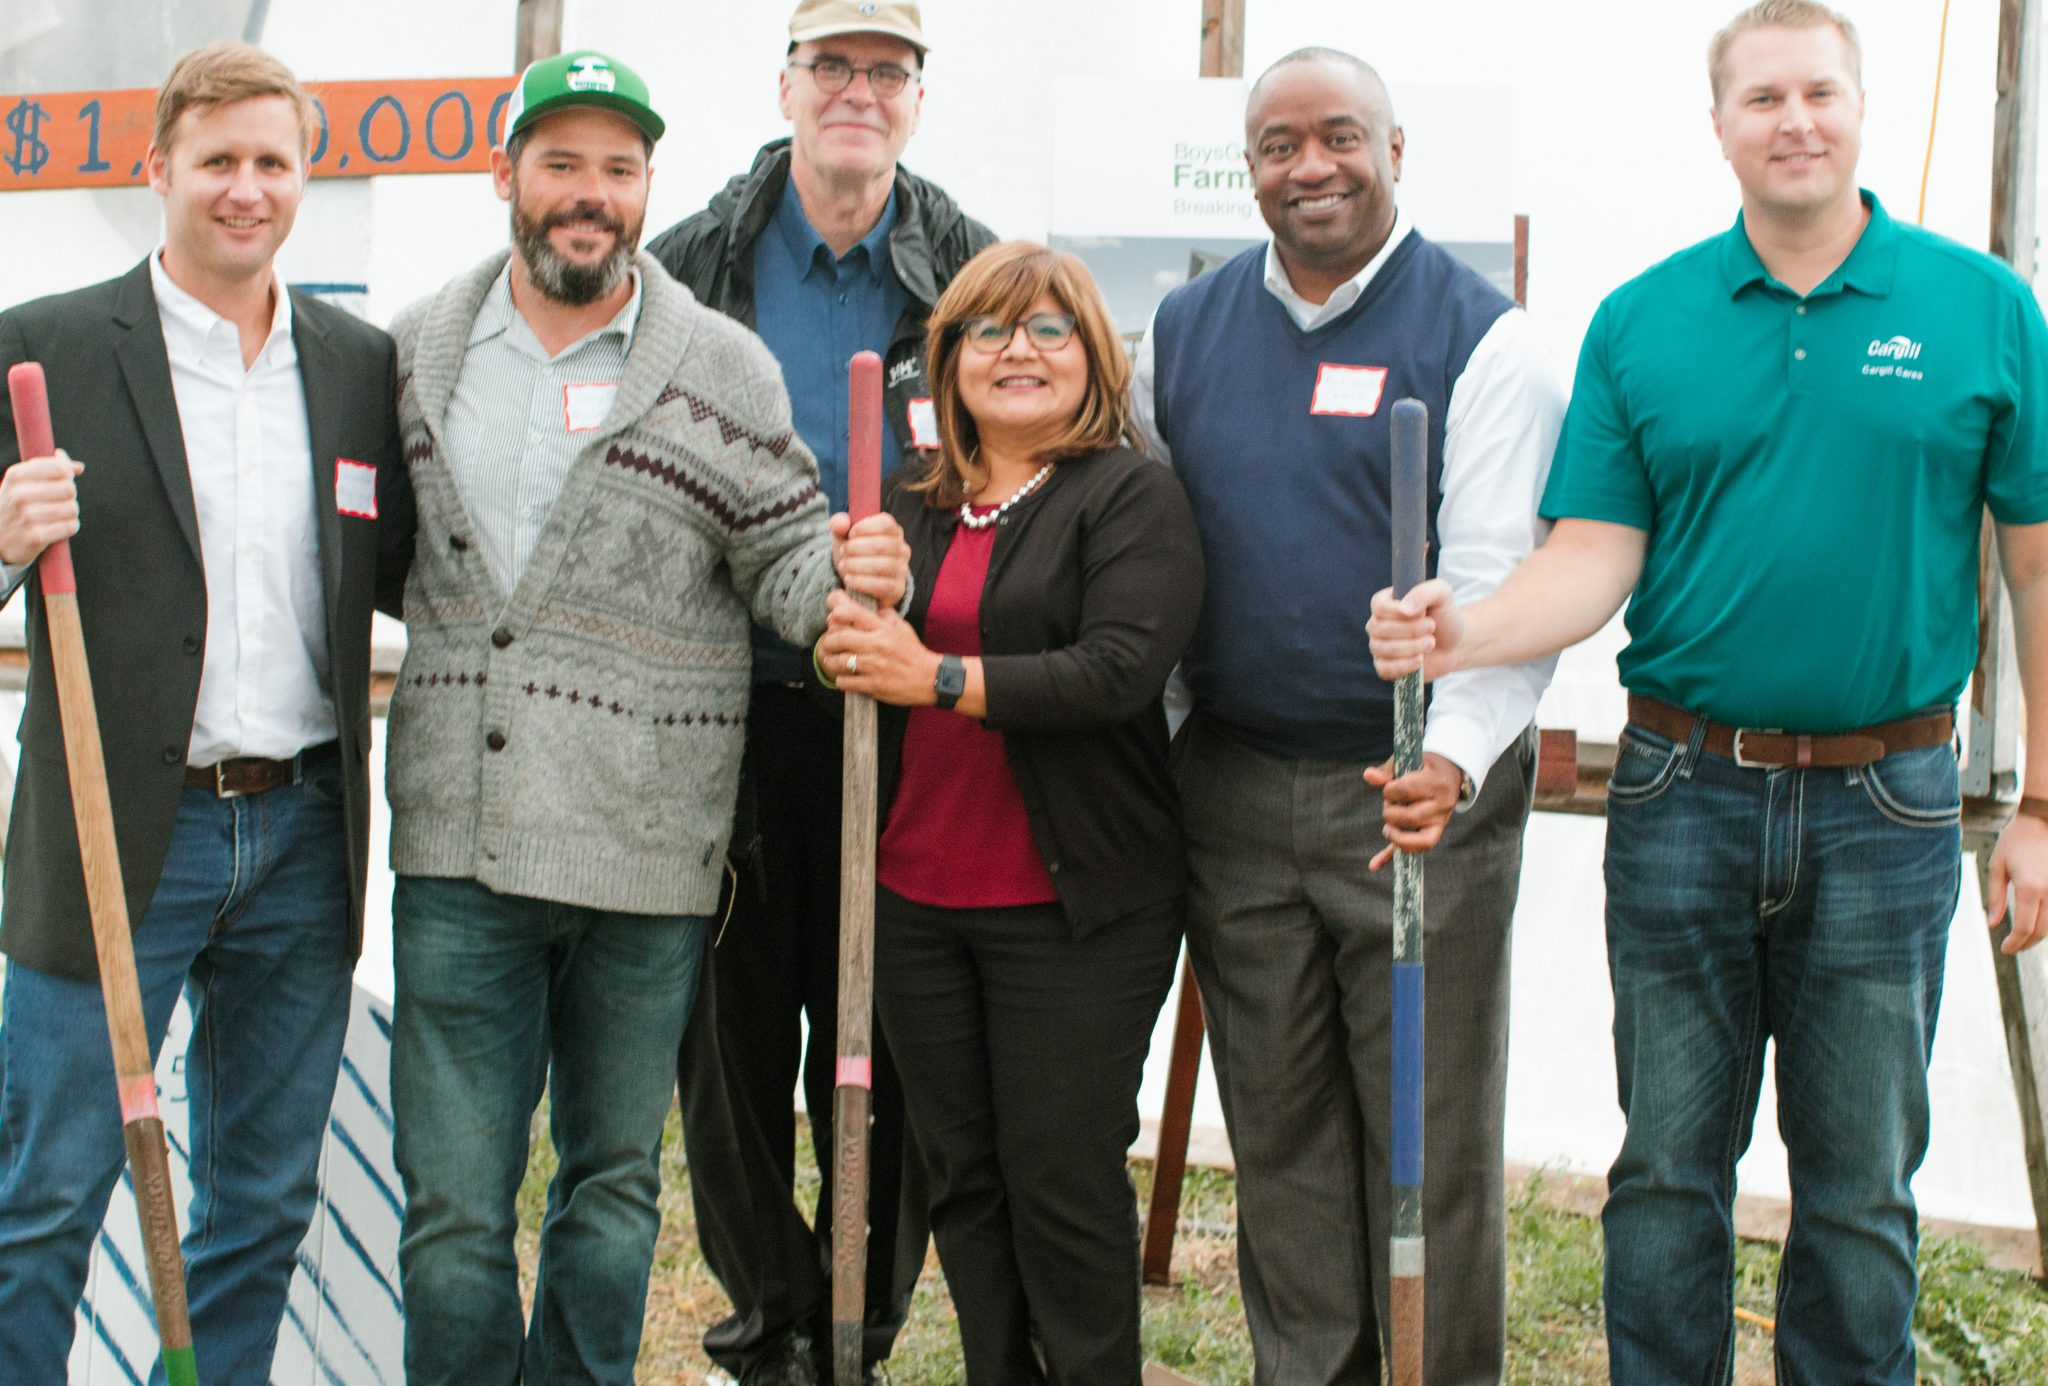 Pictured from left to right, David Schleicher {Prairie Design Build} , Johnny Gordon {BoysGrow} , Mark McHenry {McHenry Schaffer Architects}, Adriana Pecina {KC Health Care Foundation}, Mark Garrett {Smithfield Foods} & Ryan Murdock {Cargill}.  All Ready for Action....